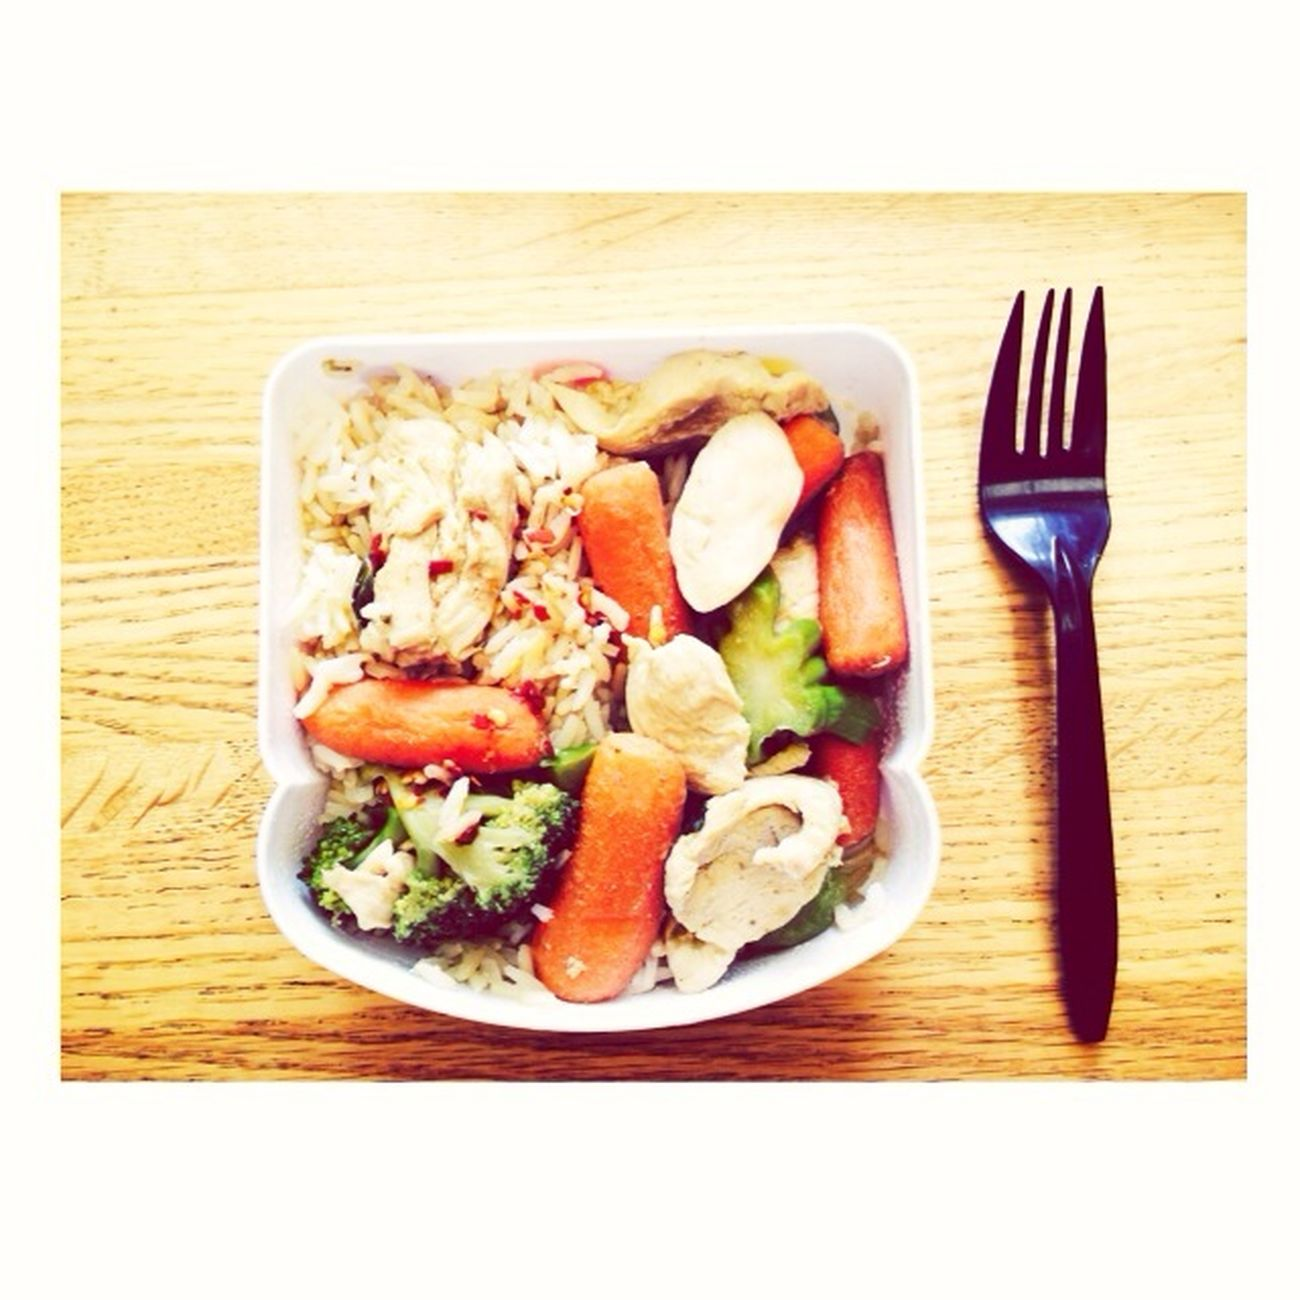 My guggig lunch Homemade Food Lunch Box Eatclean Eating Healthy